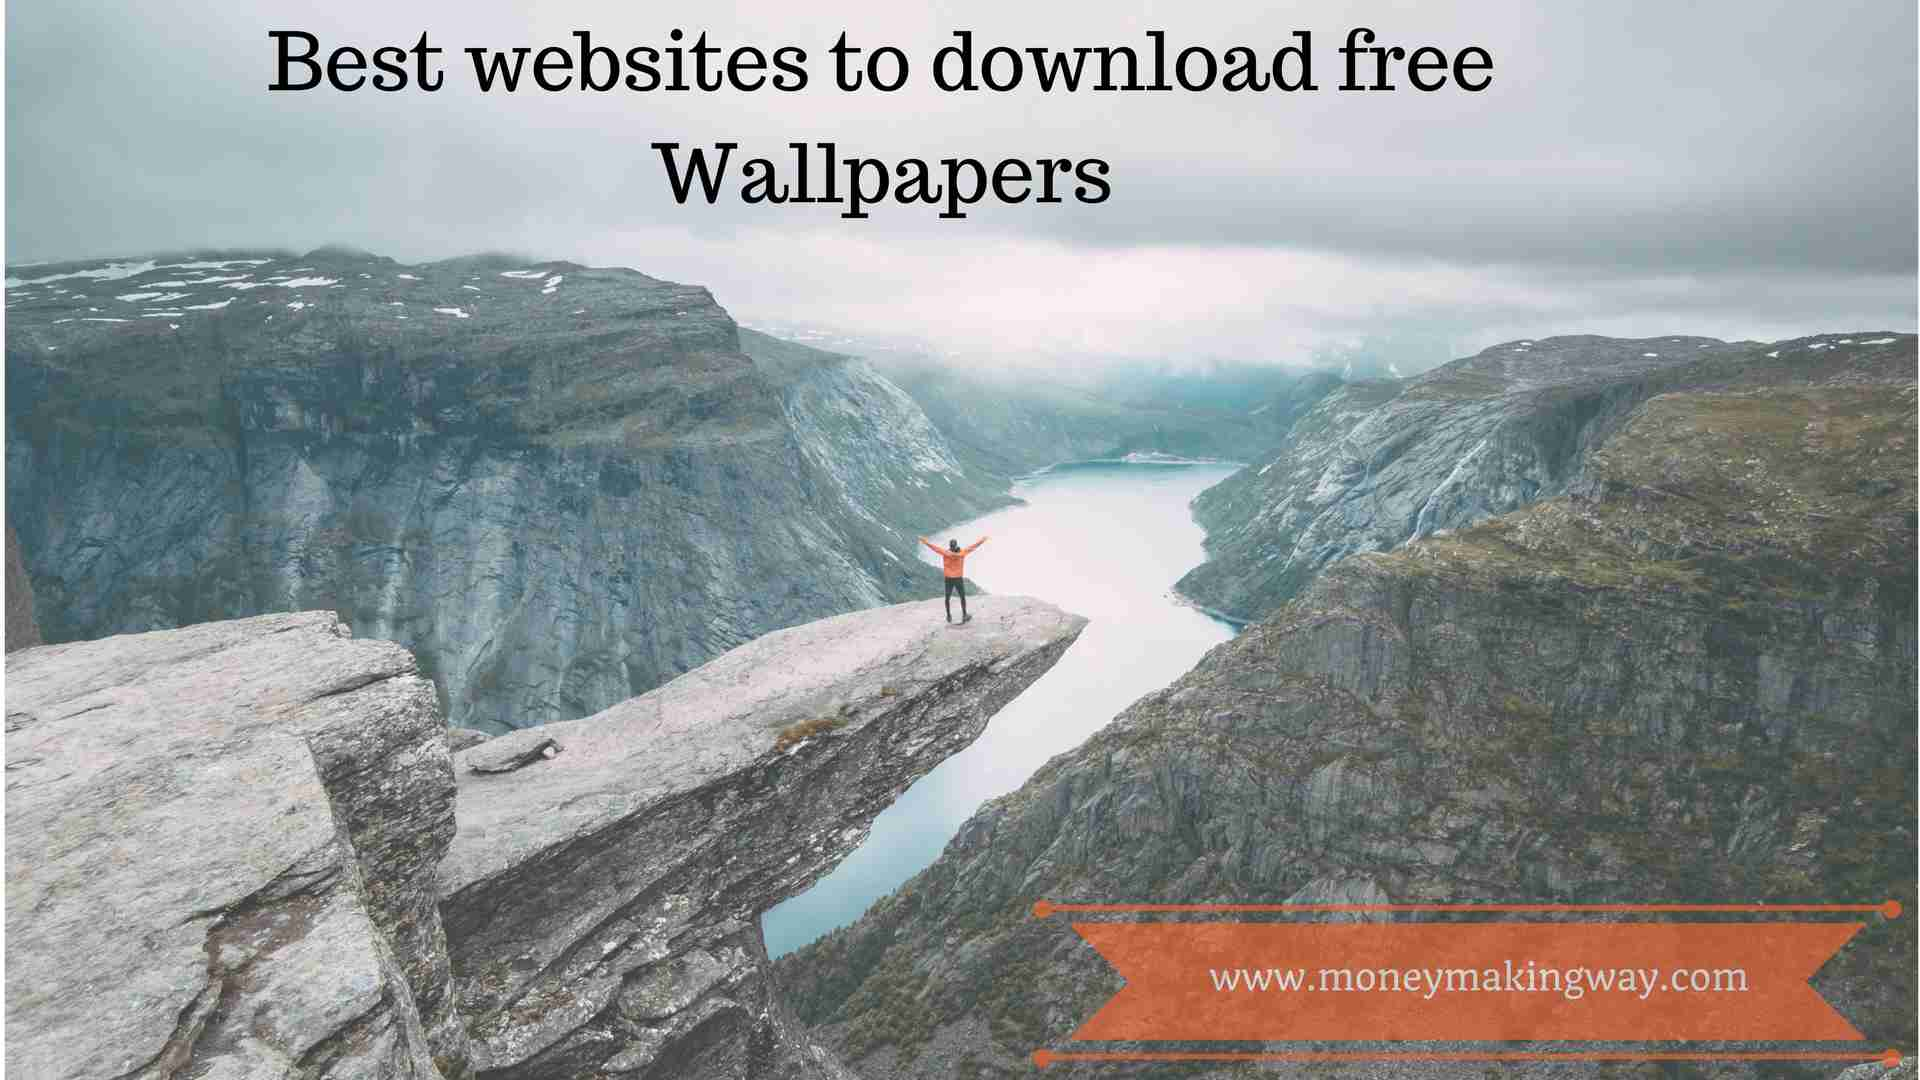 13 Best Websites To Download Free Wallpapers Sheknowsfinance